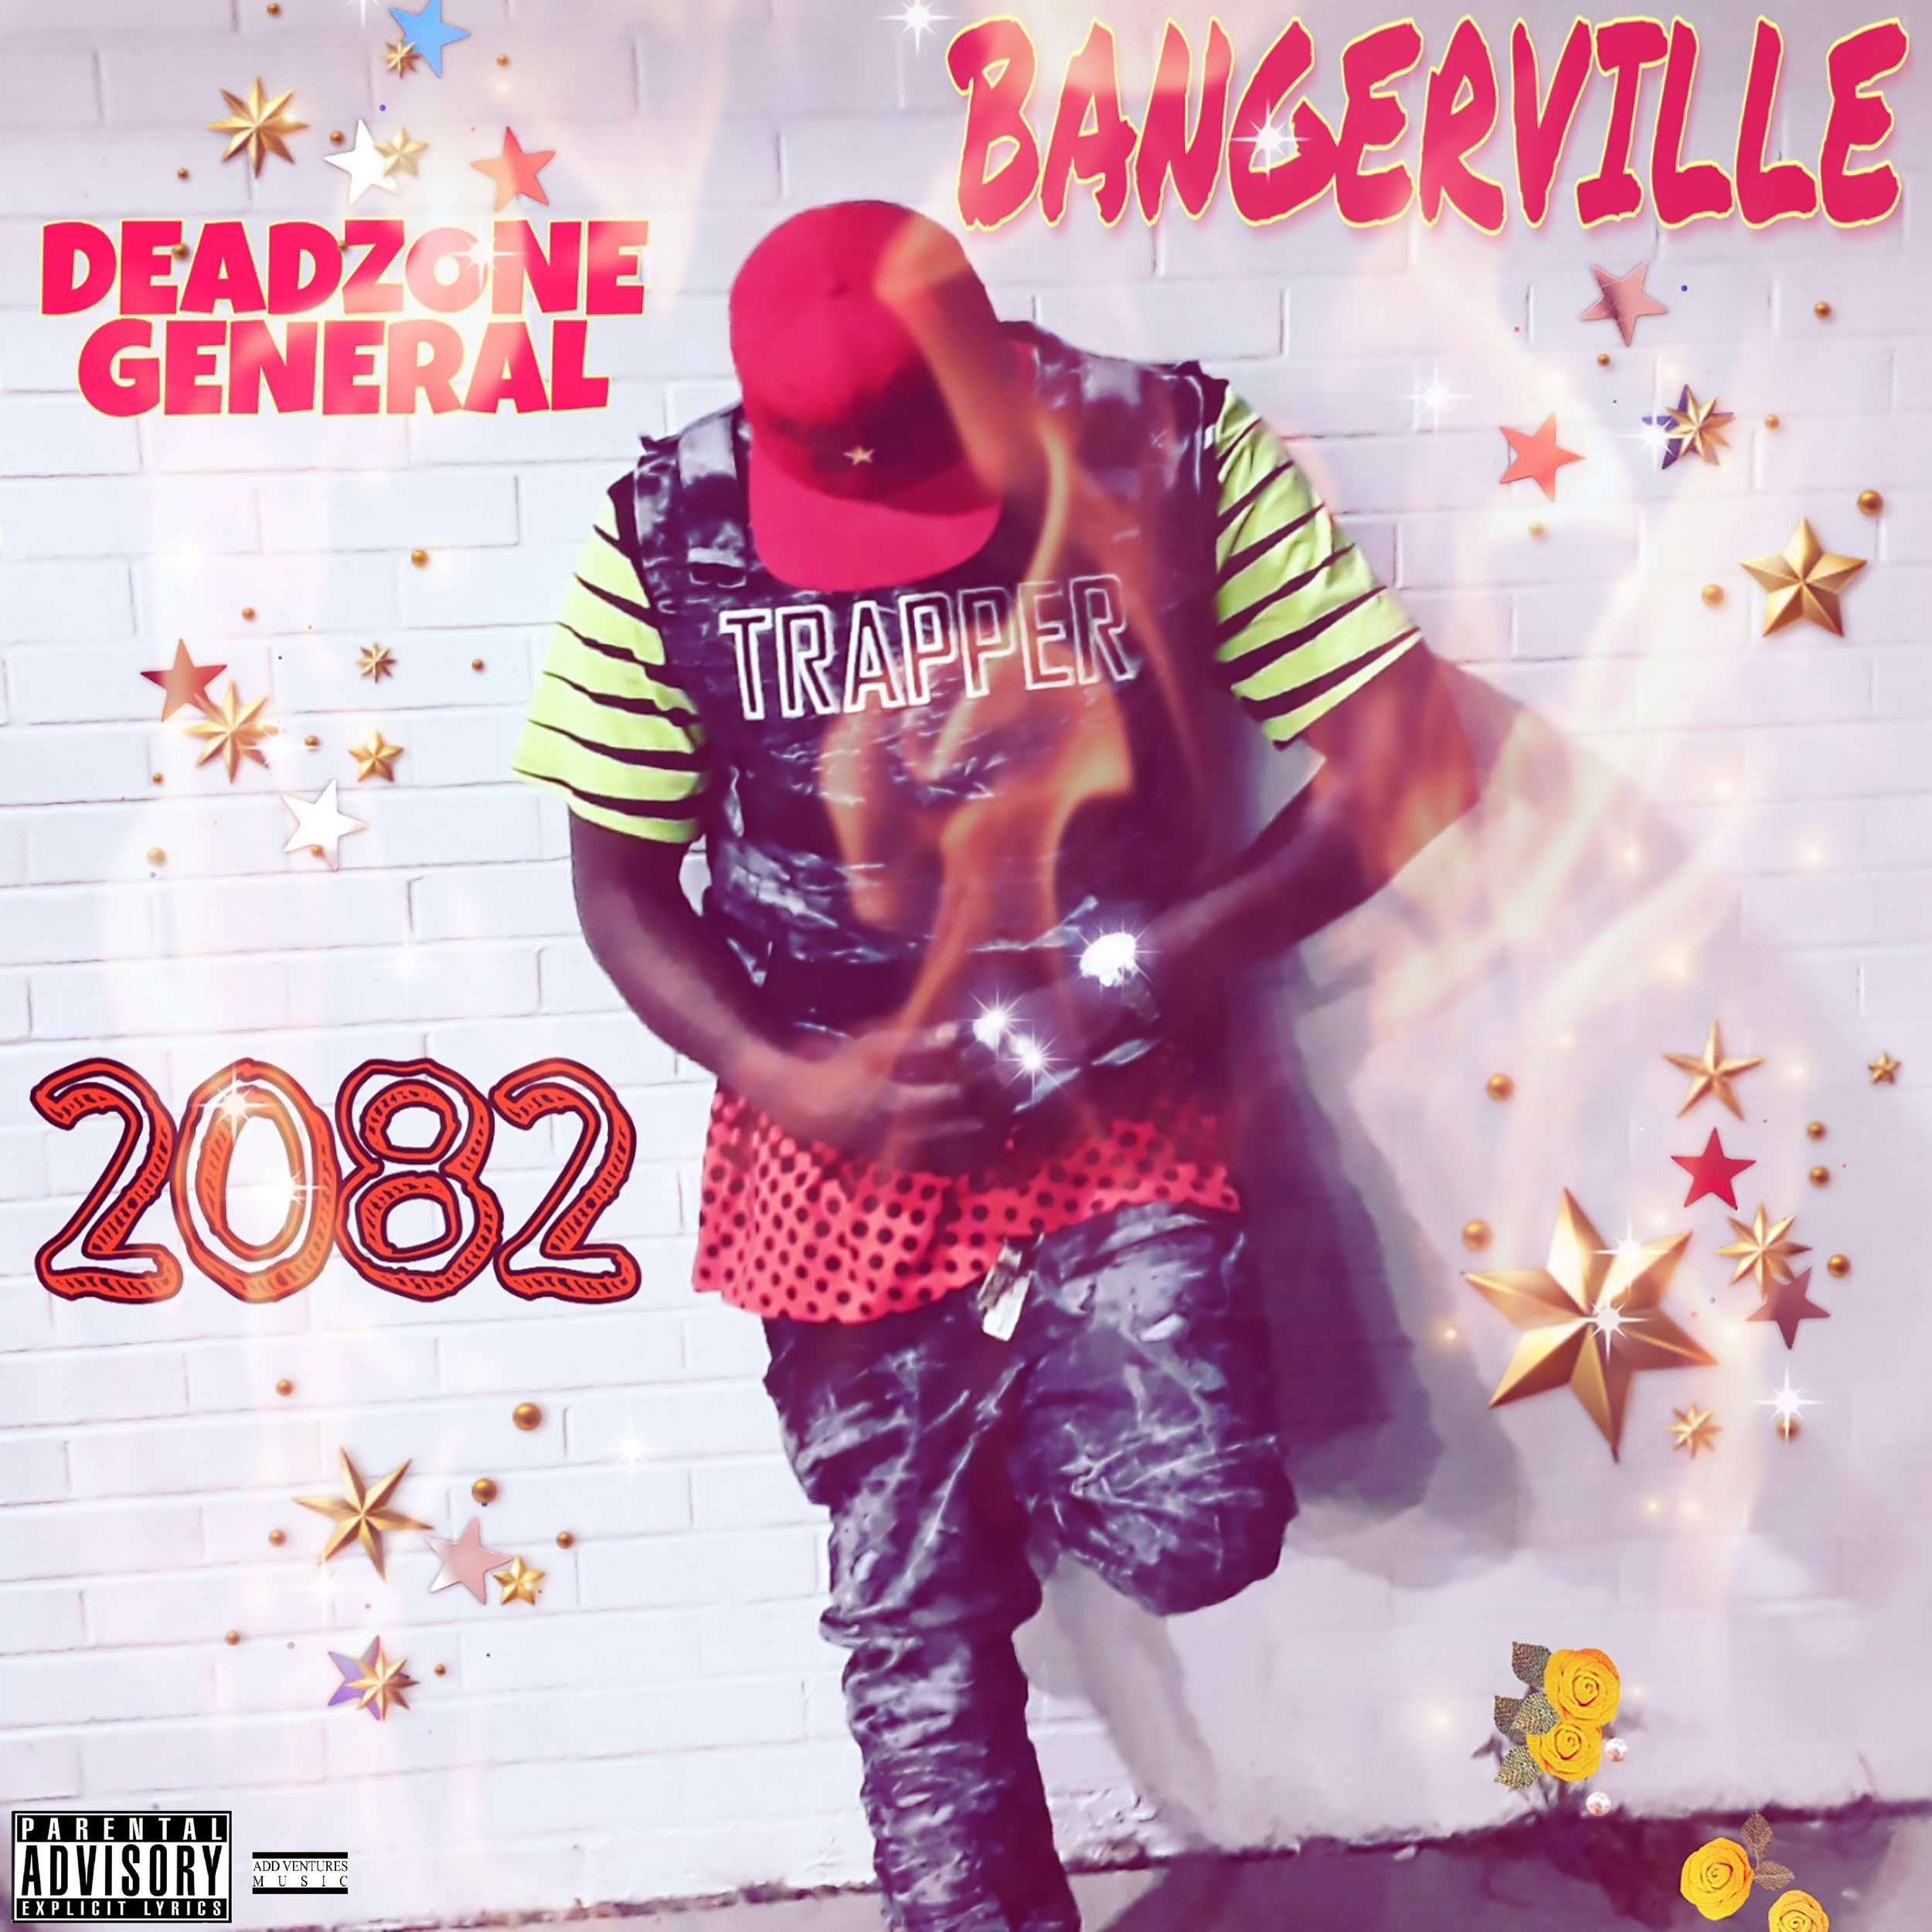 Deadzone General Bangerville Album - Explicit Final.jpg